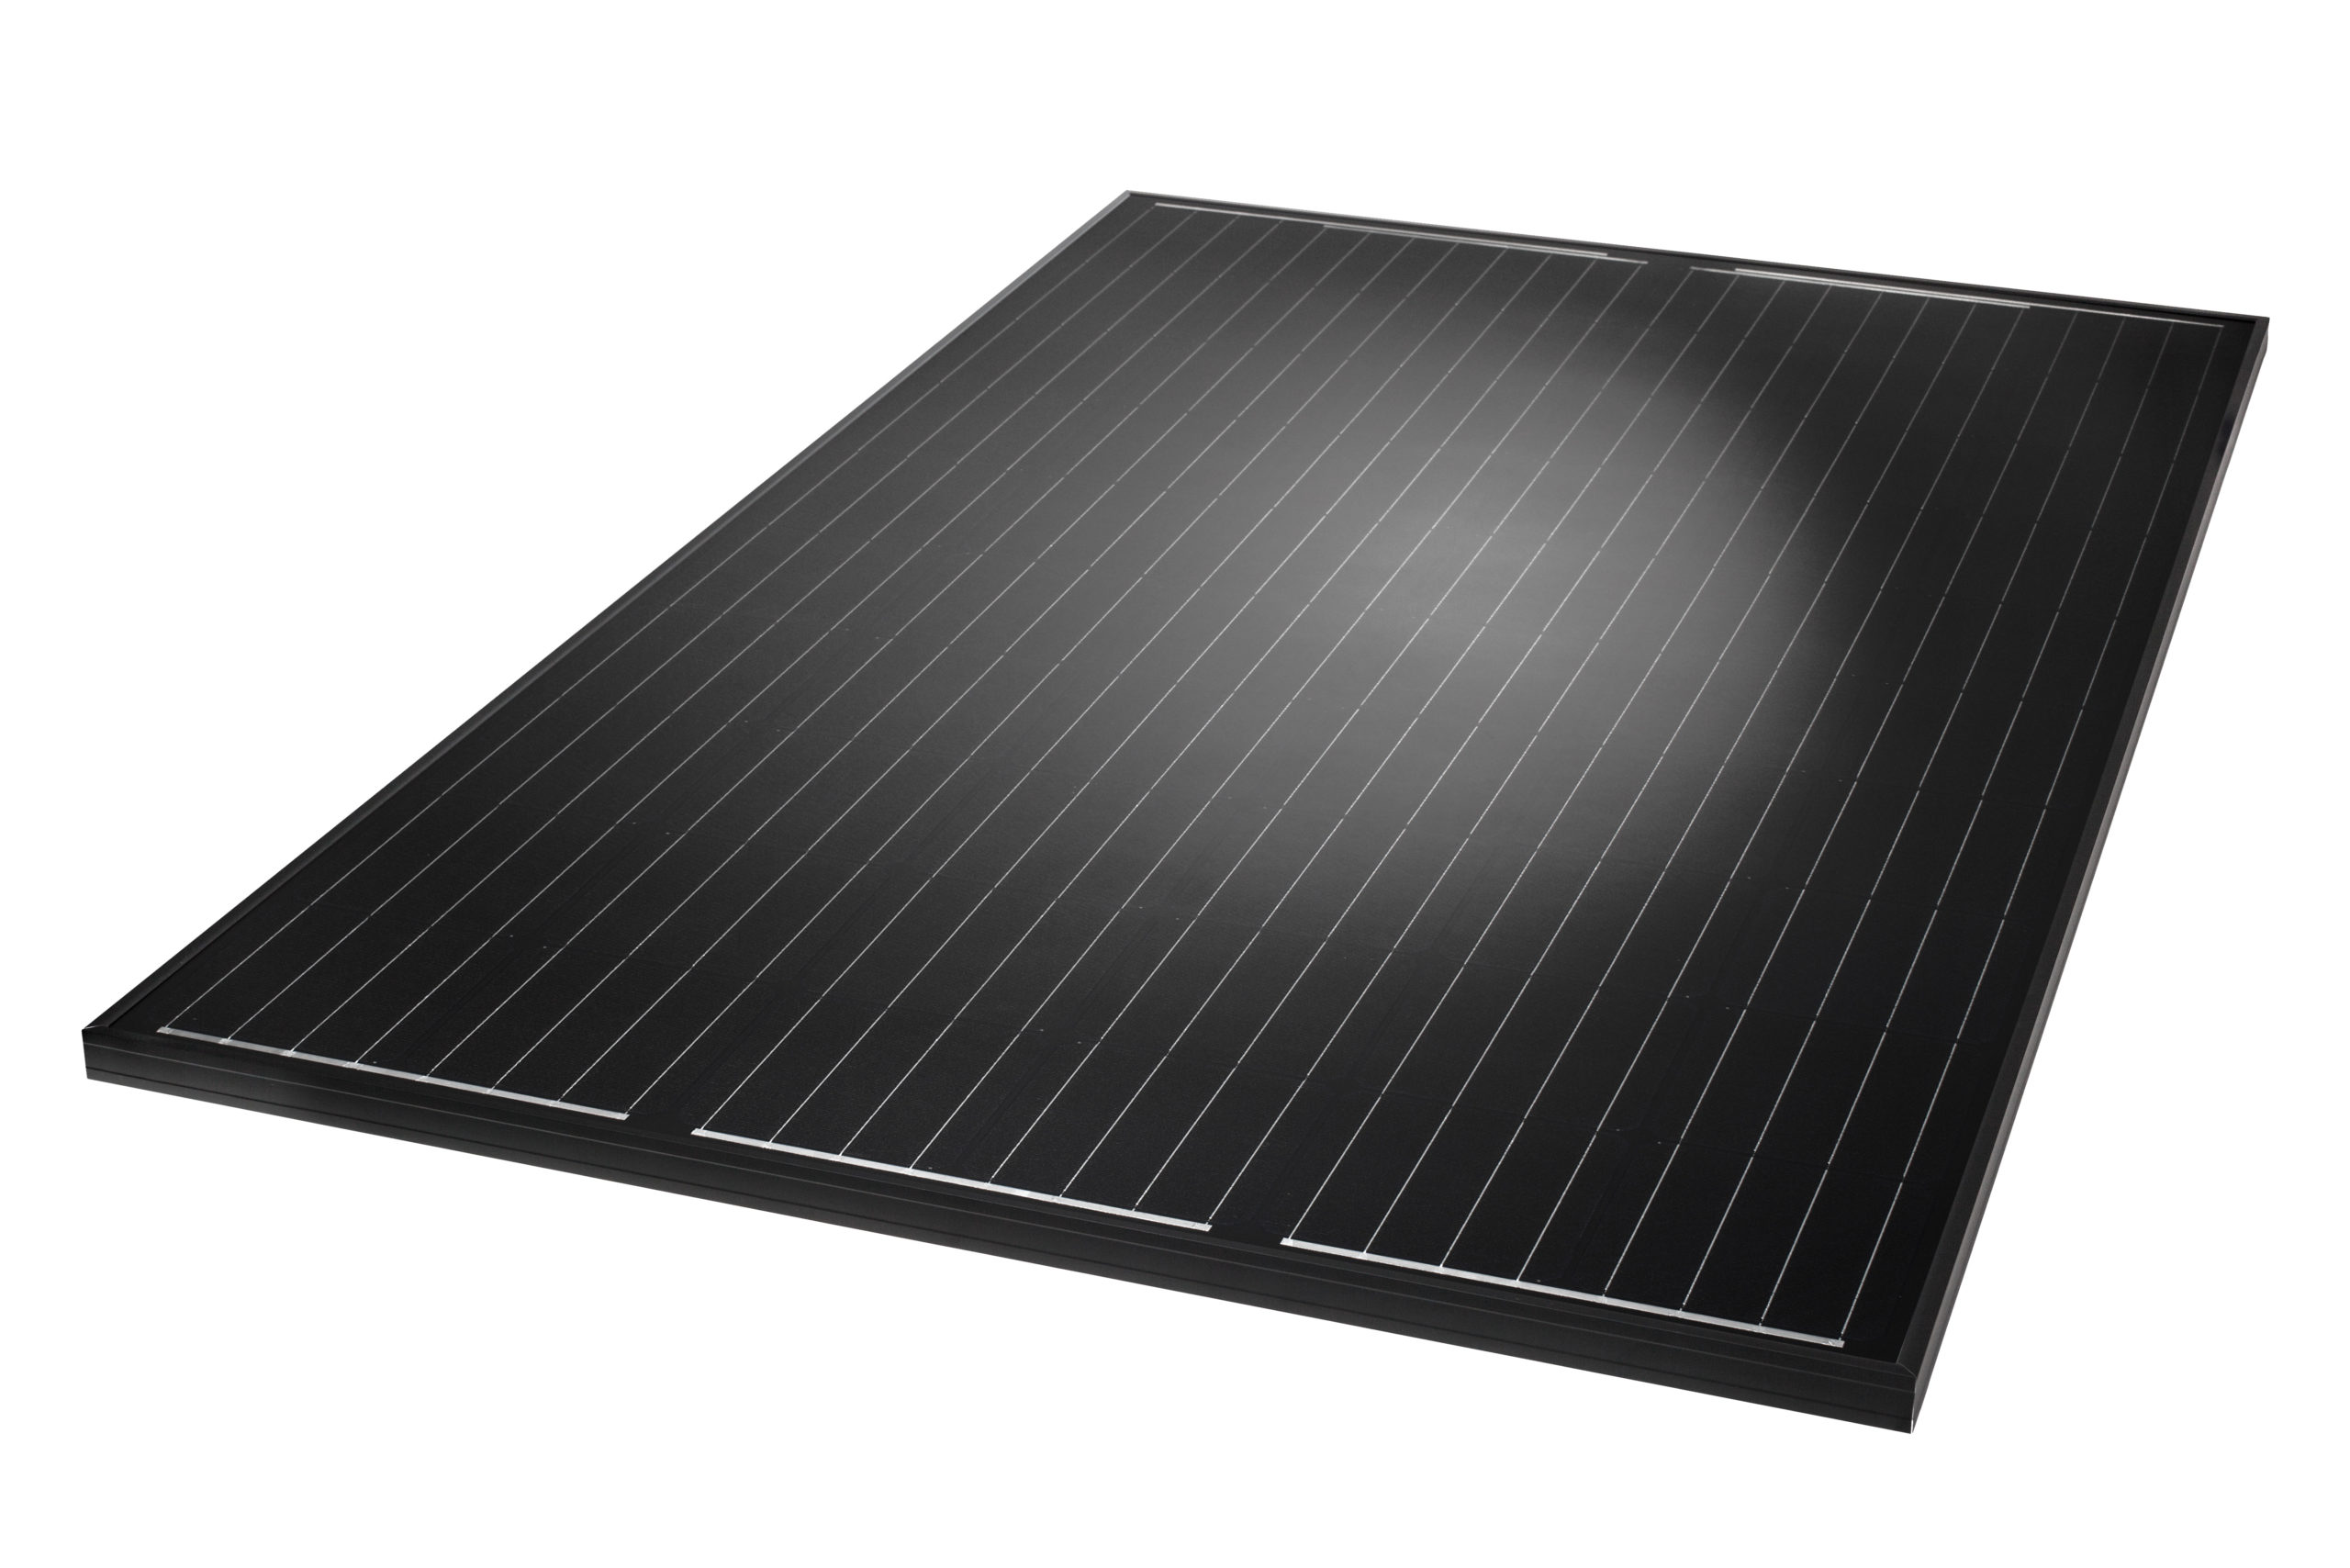 The Q.PEAK series combines high power classes, leading to low levelised cost of electricity. Image: Hanwha Q CELLS